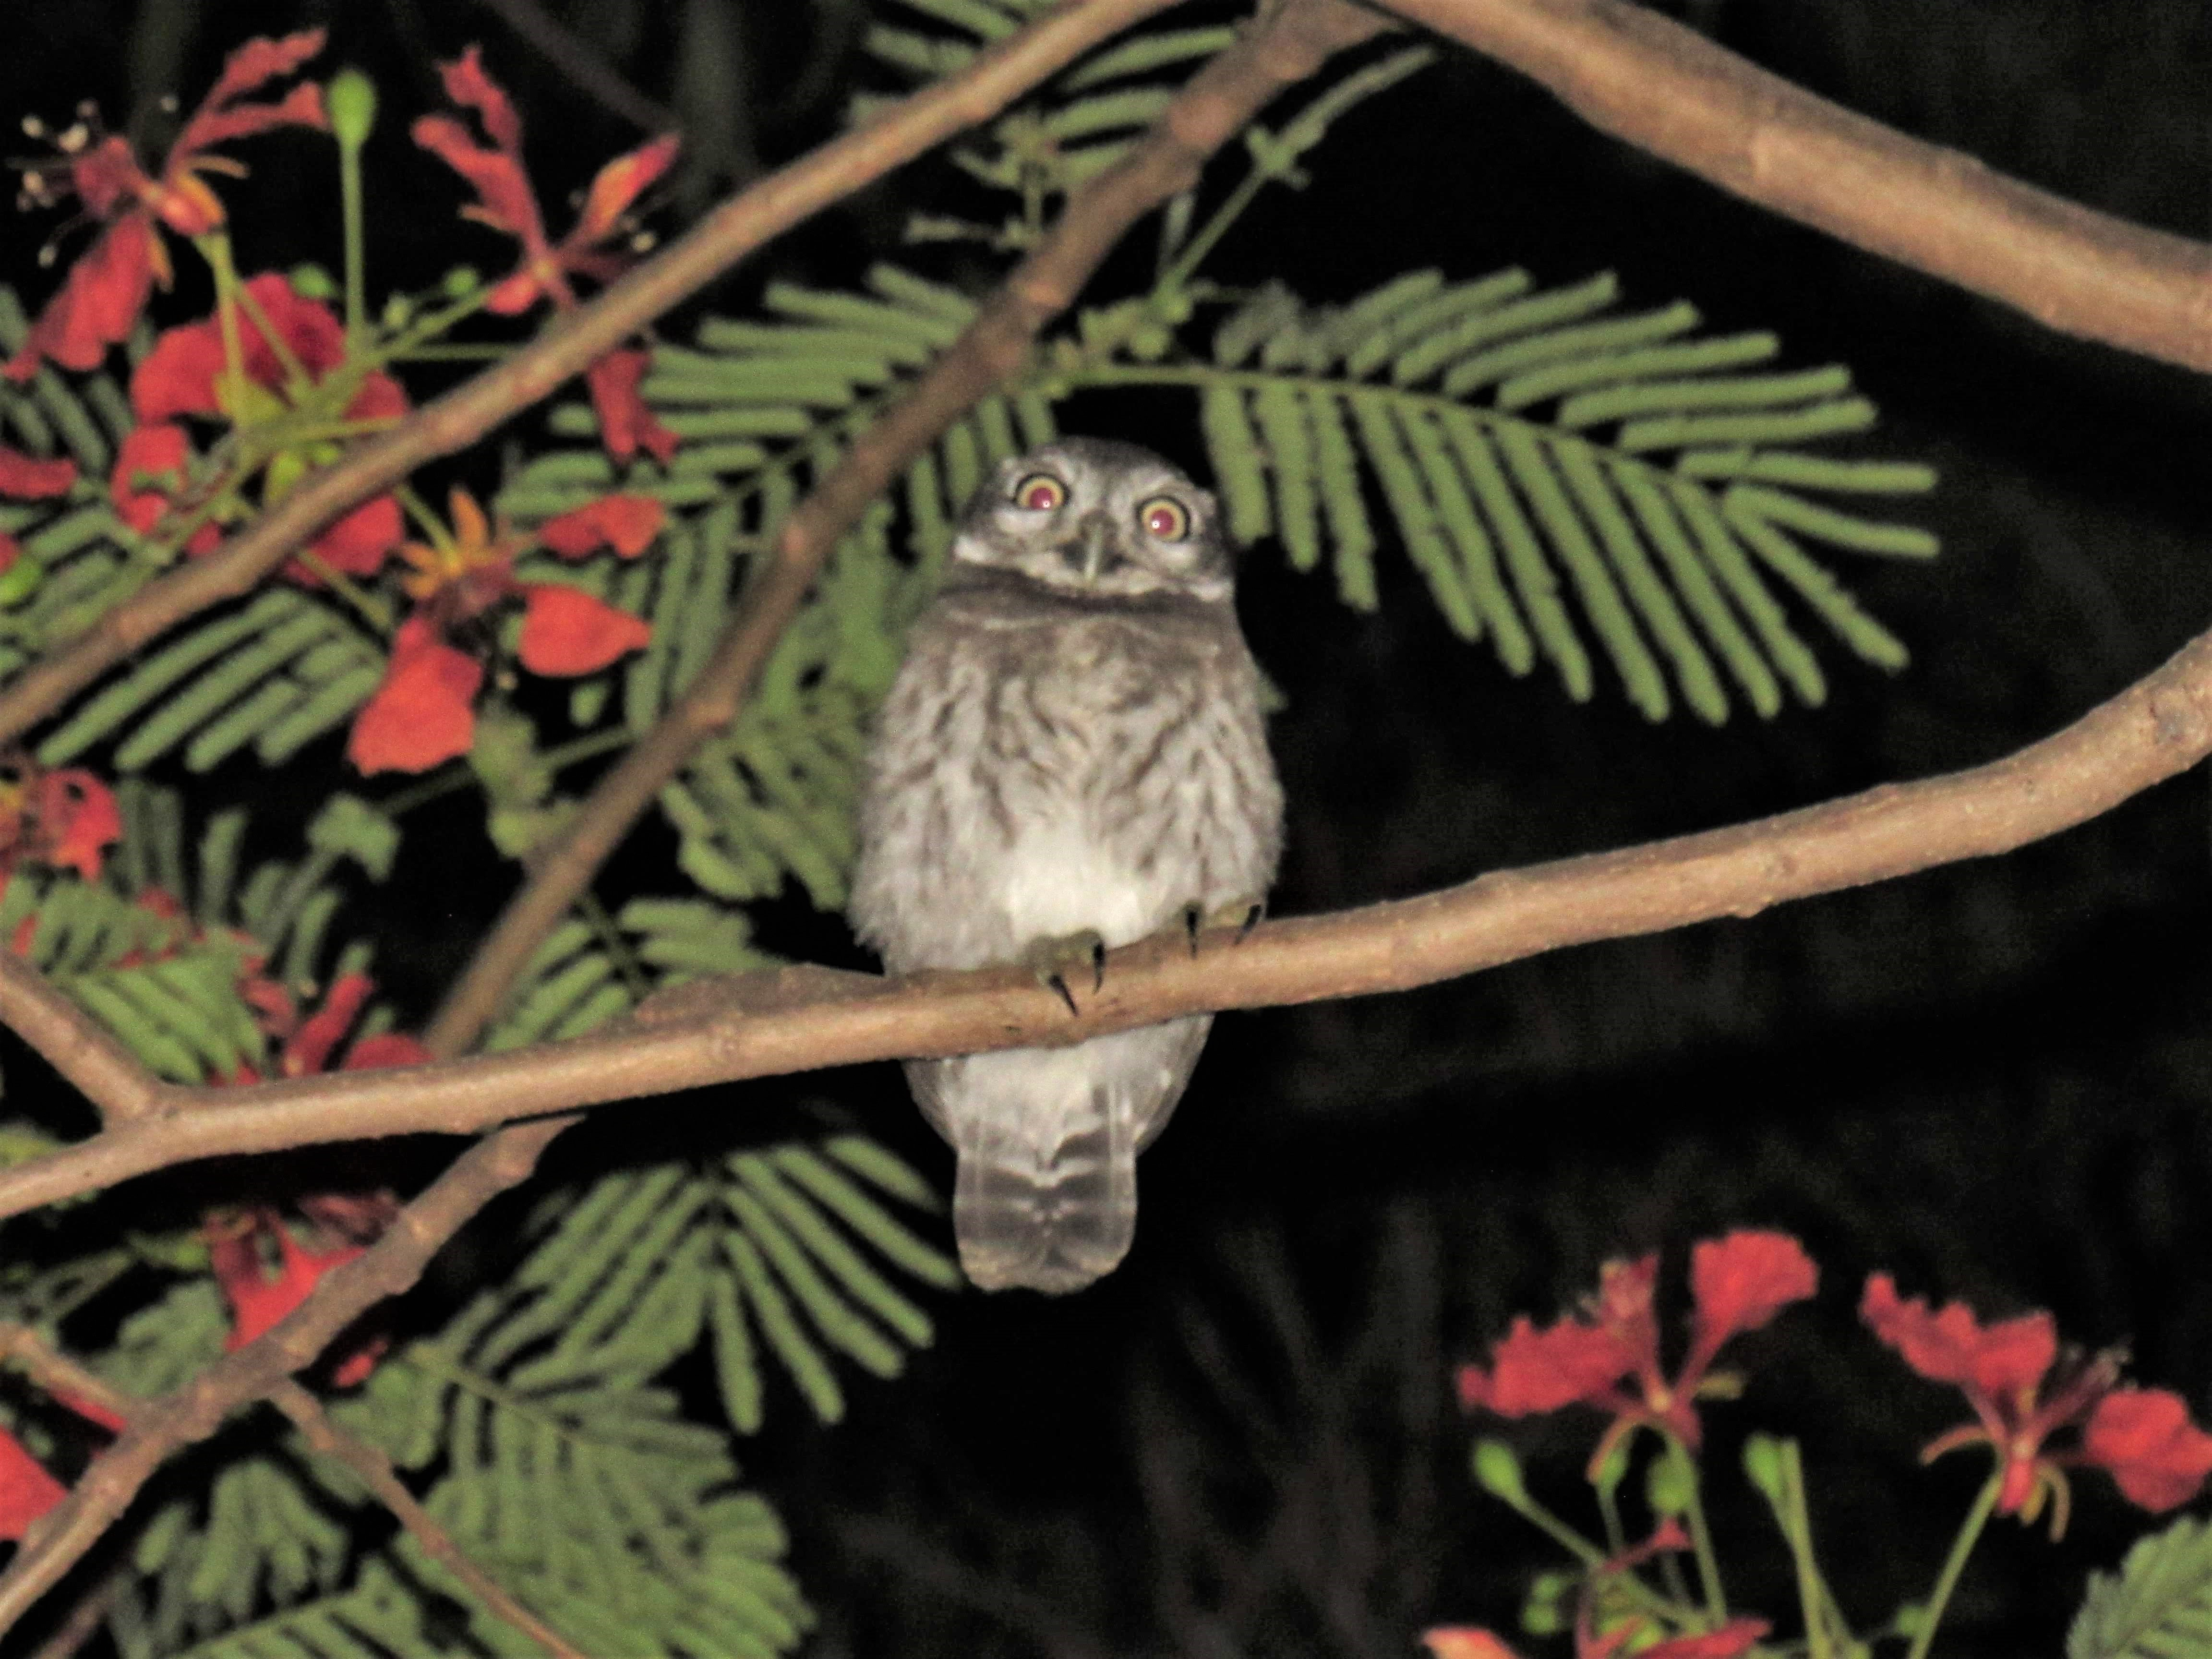 A baby owlet perches on a tree branch and looks at the camera.